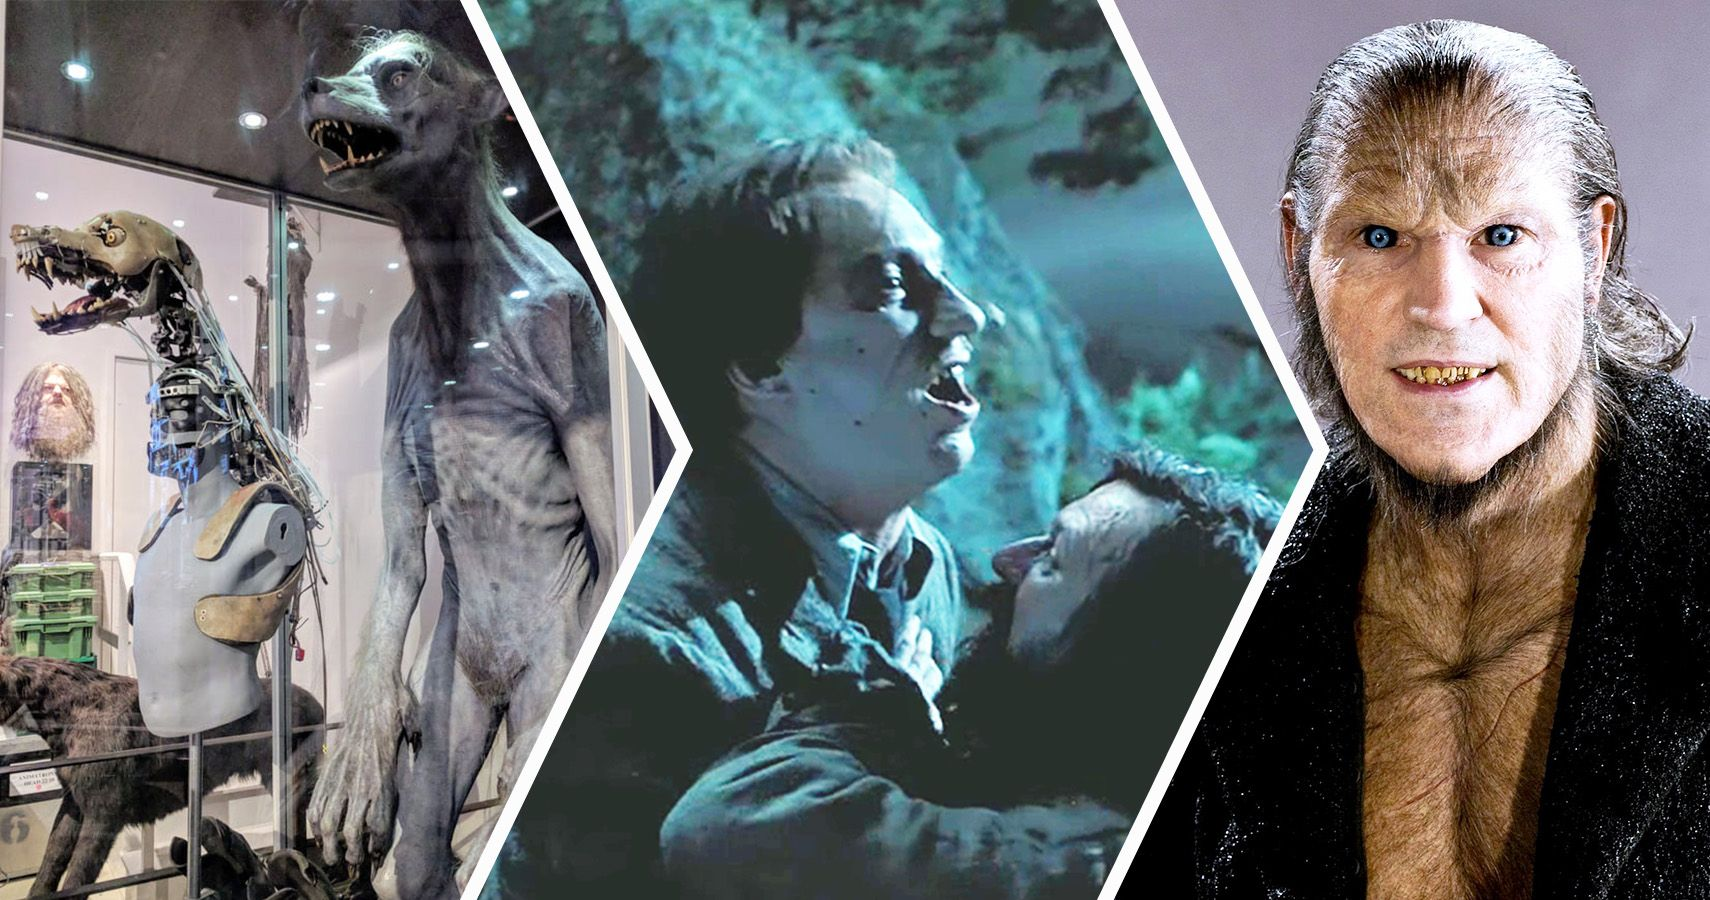 Harry Potter: 20 Strangest Details About Remus Lupin's Anatomy